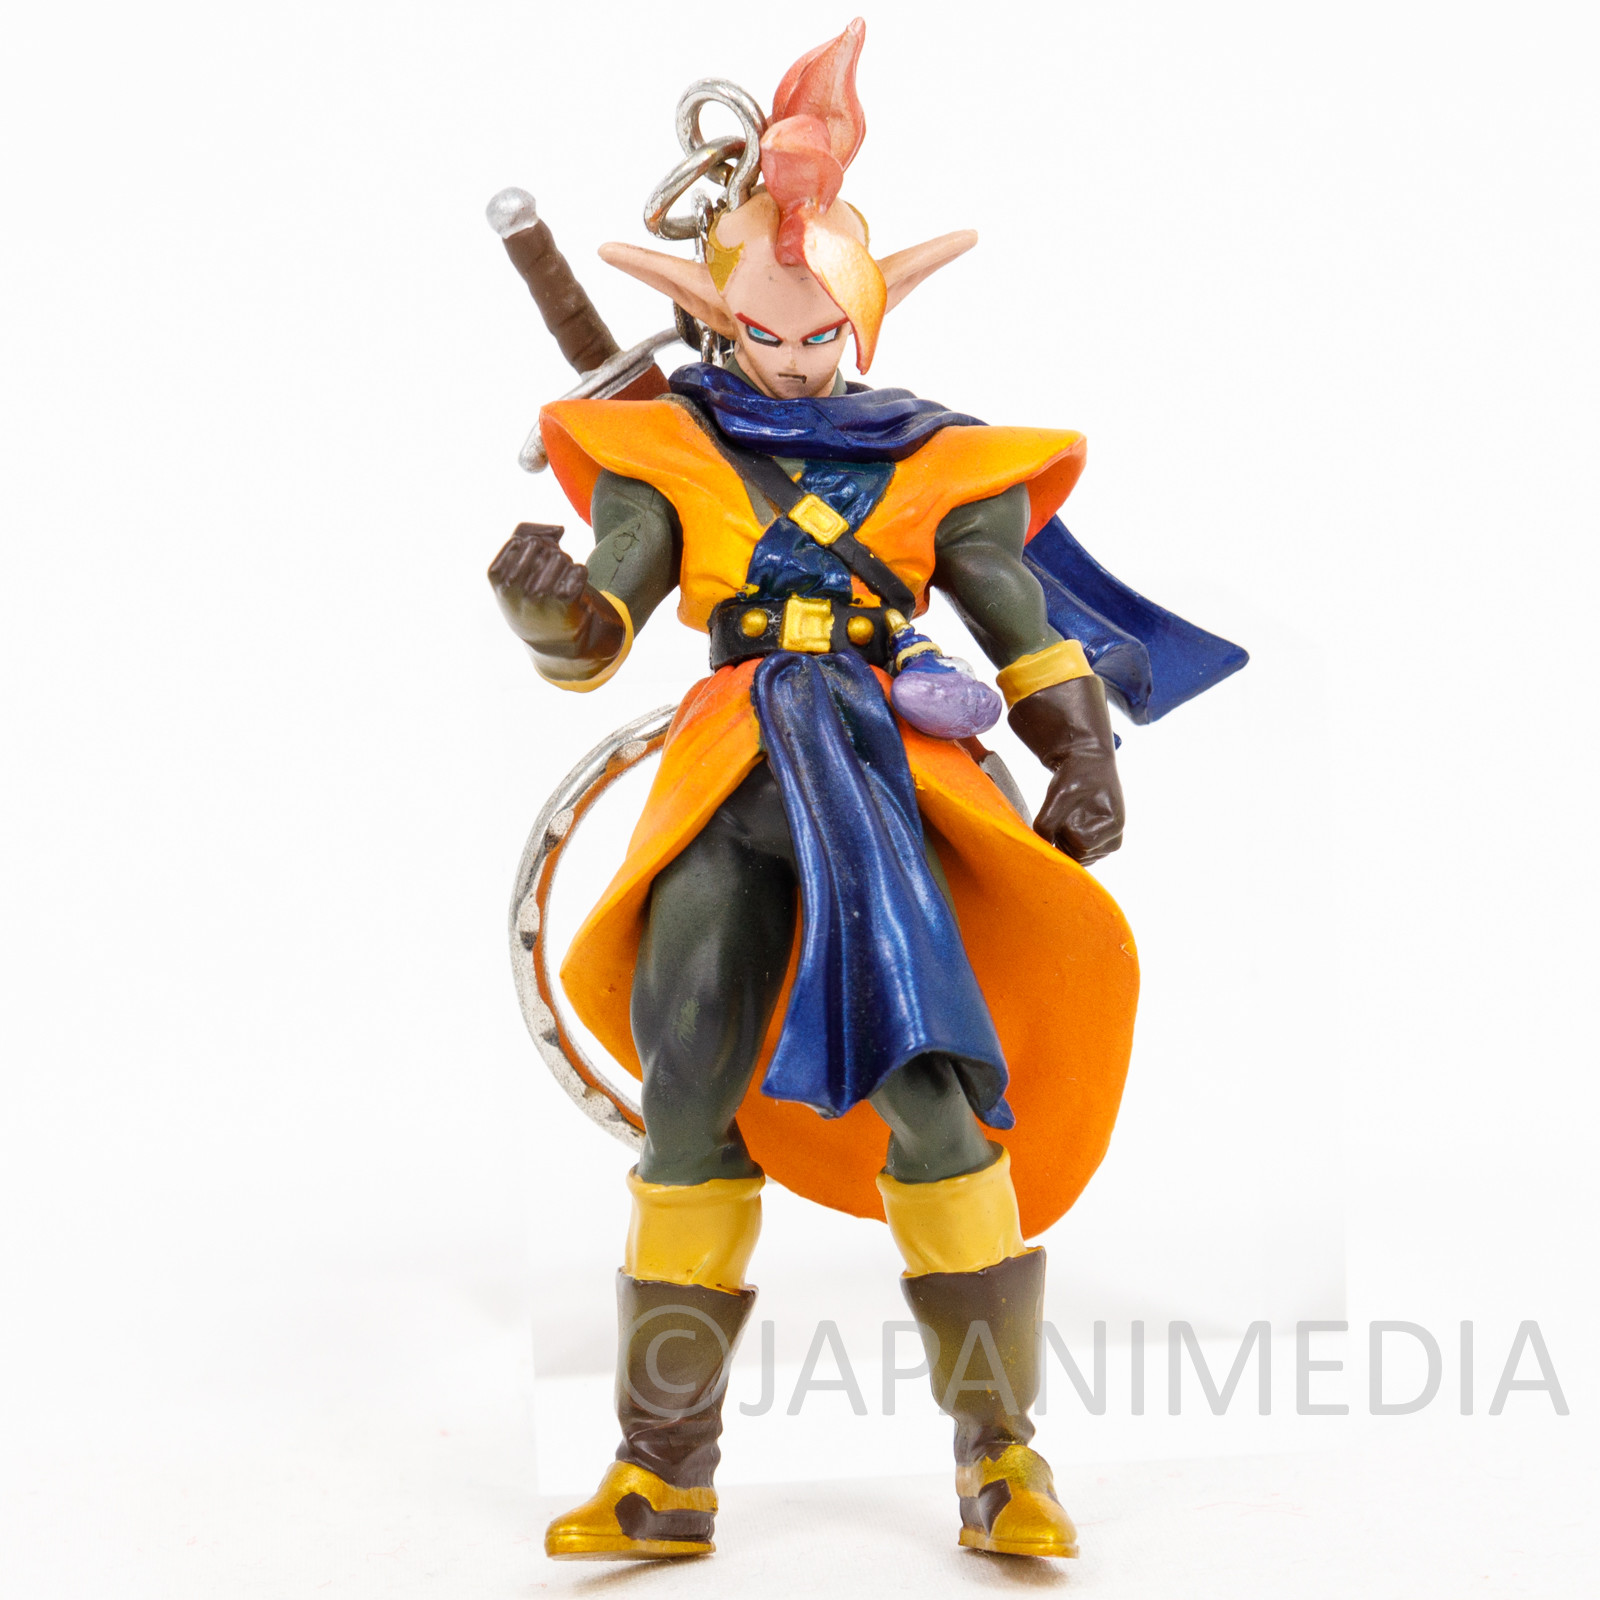 Dragon Ball Z Tapion Figure Key Chain Holder JAPAN ANIME MANGA